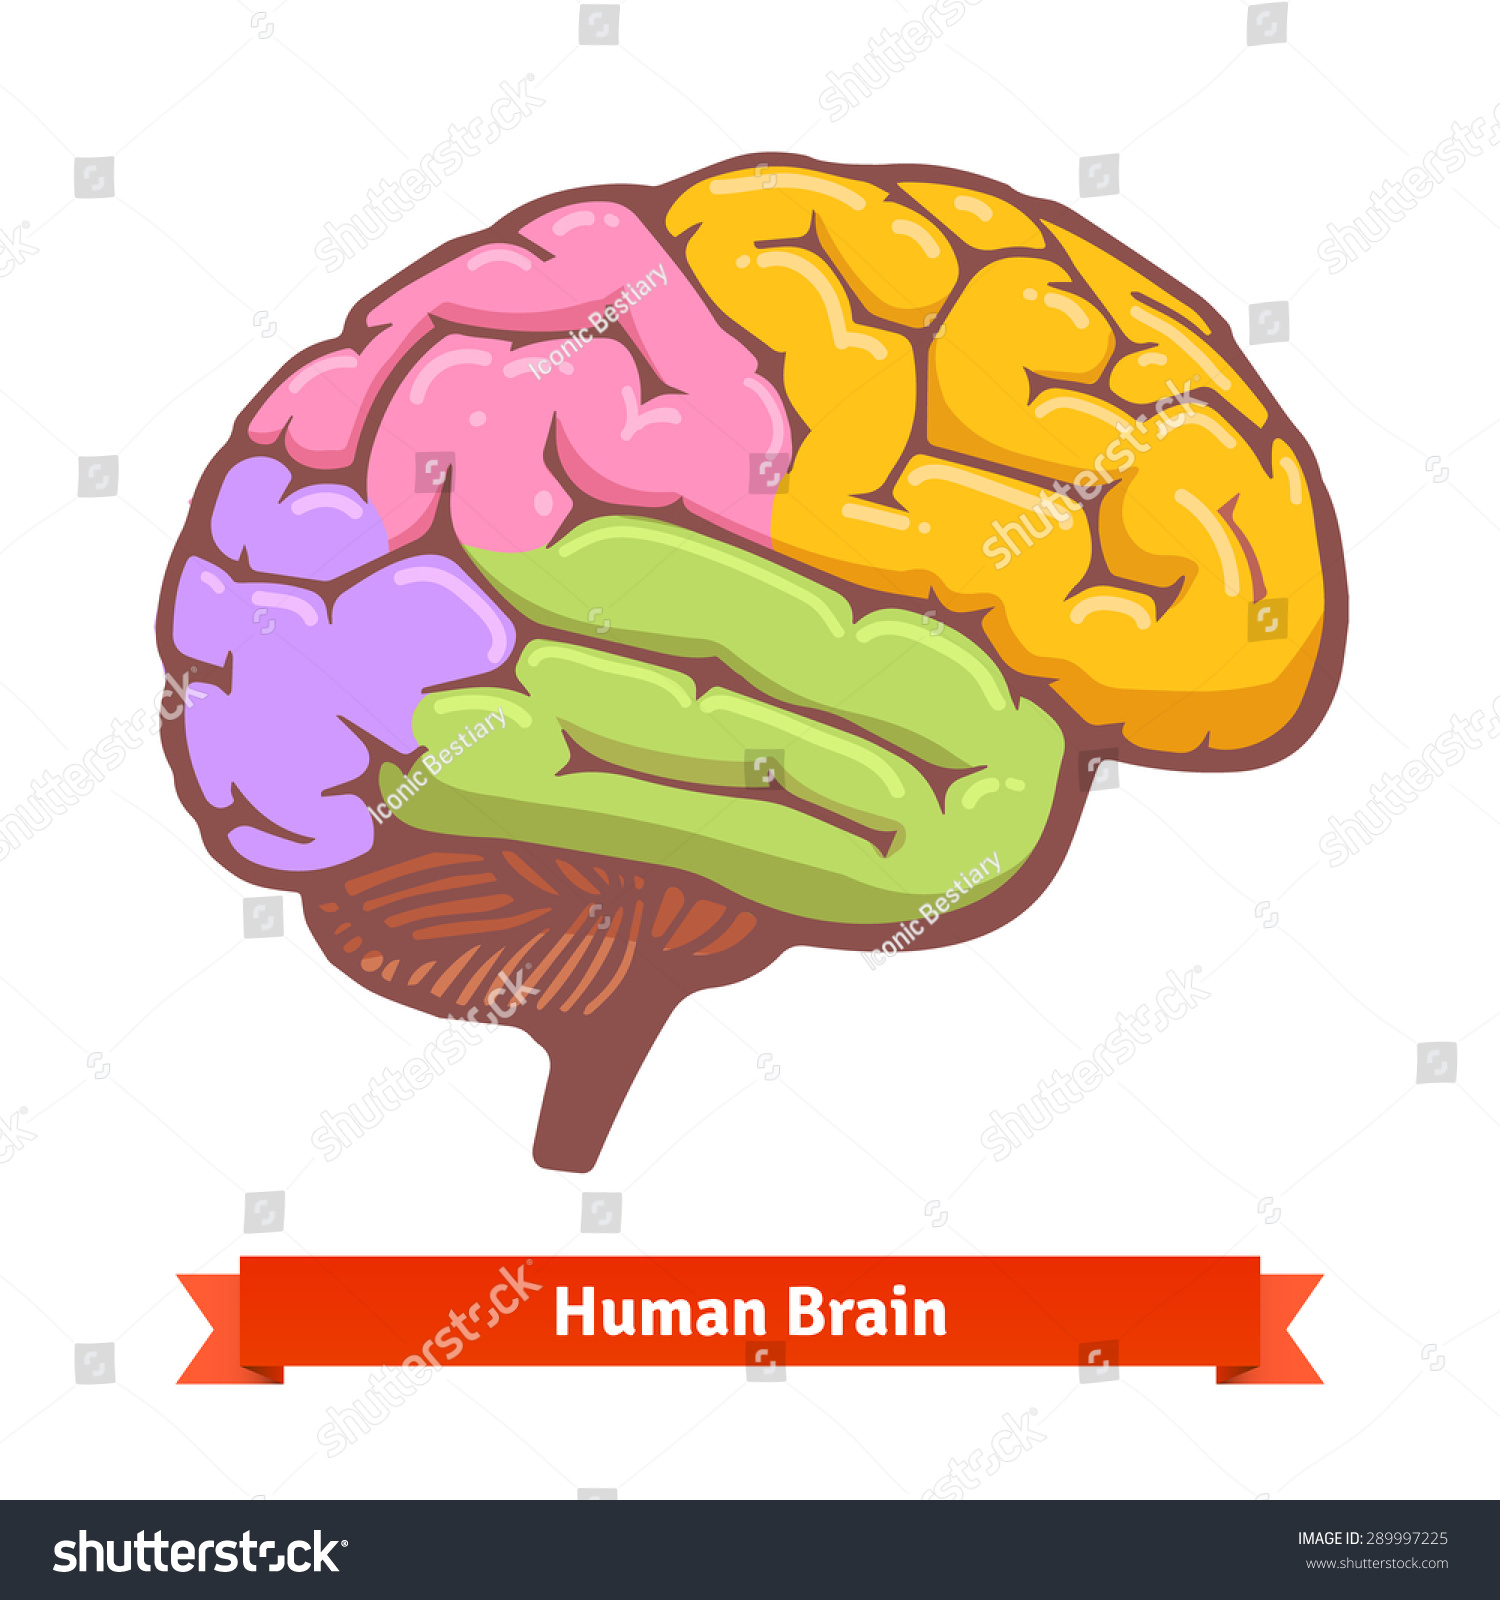 Coloured Human Brain Diagram Flat Vector Stock Vector (Royalty Free ...